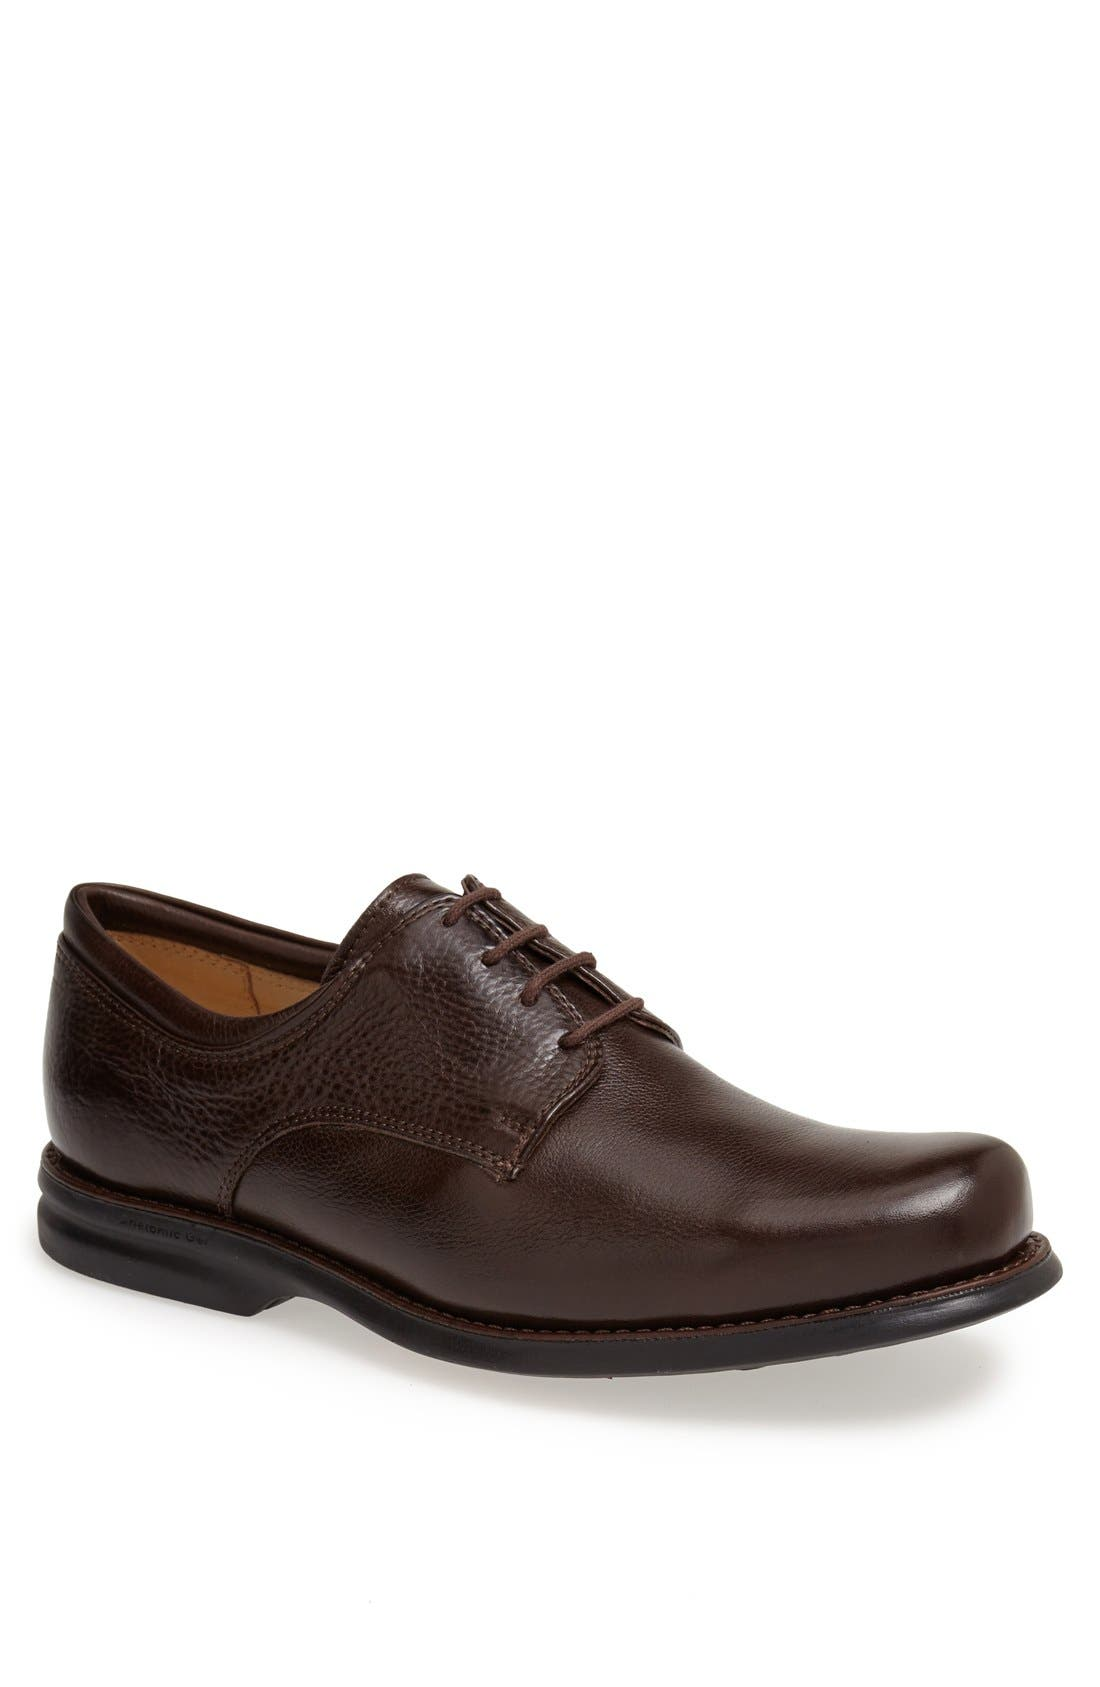 ANATOMIC & CO Niteroi Plain Toe Derby